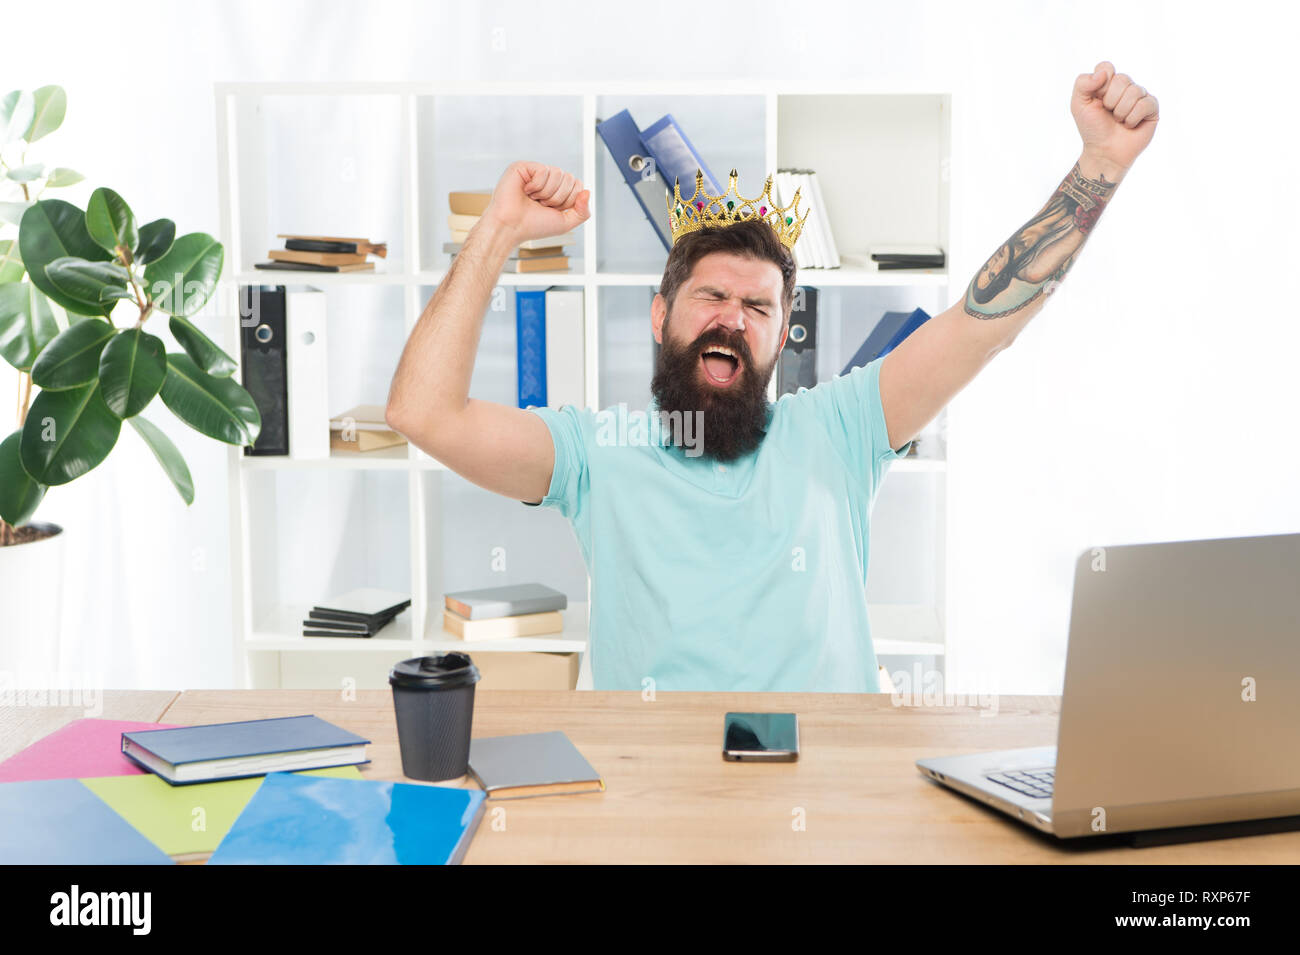 conceited happy winner. confident smiling man. Positive human emotion. facial expression of bearded man hipster. feeling and reaction. greedy businessman. altruist sacrifices himself. social problems. - Stock Image